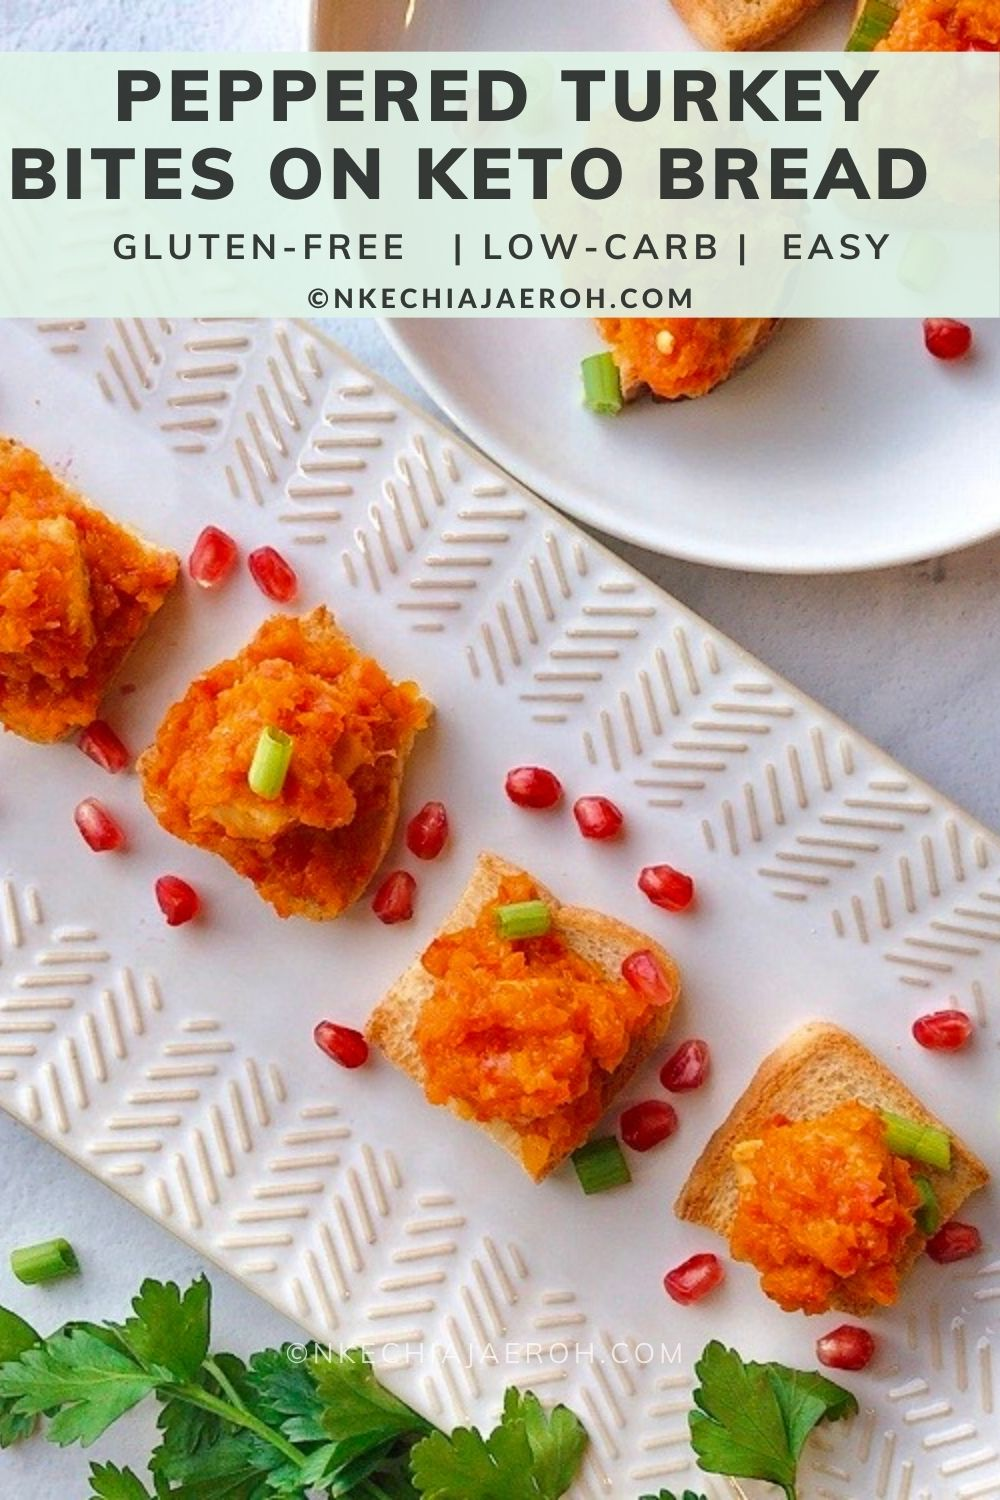 Super easy and delicious peppered turkey bites (Nigerian Style) I will unquestionably say that peppered meat recipes originated from Nigeria and typically very spicy. However, these peppered turkey bites are not spicy at all; I intentionally made them mild so that my kids would equally enjoy them!  You can add some spicy peppers like Habanero or Jalapeños if you wish to make this recipe spicy. The bottom line is to make this recipe to suit your desire.